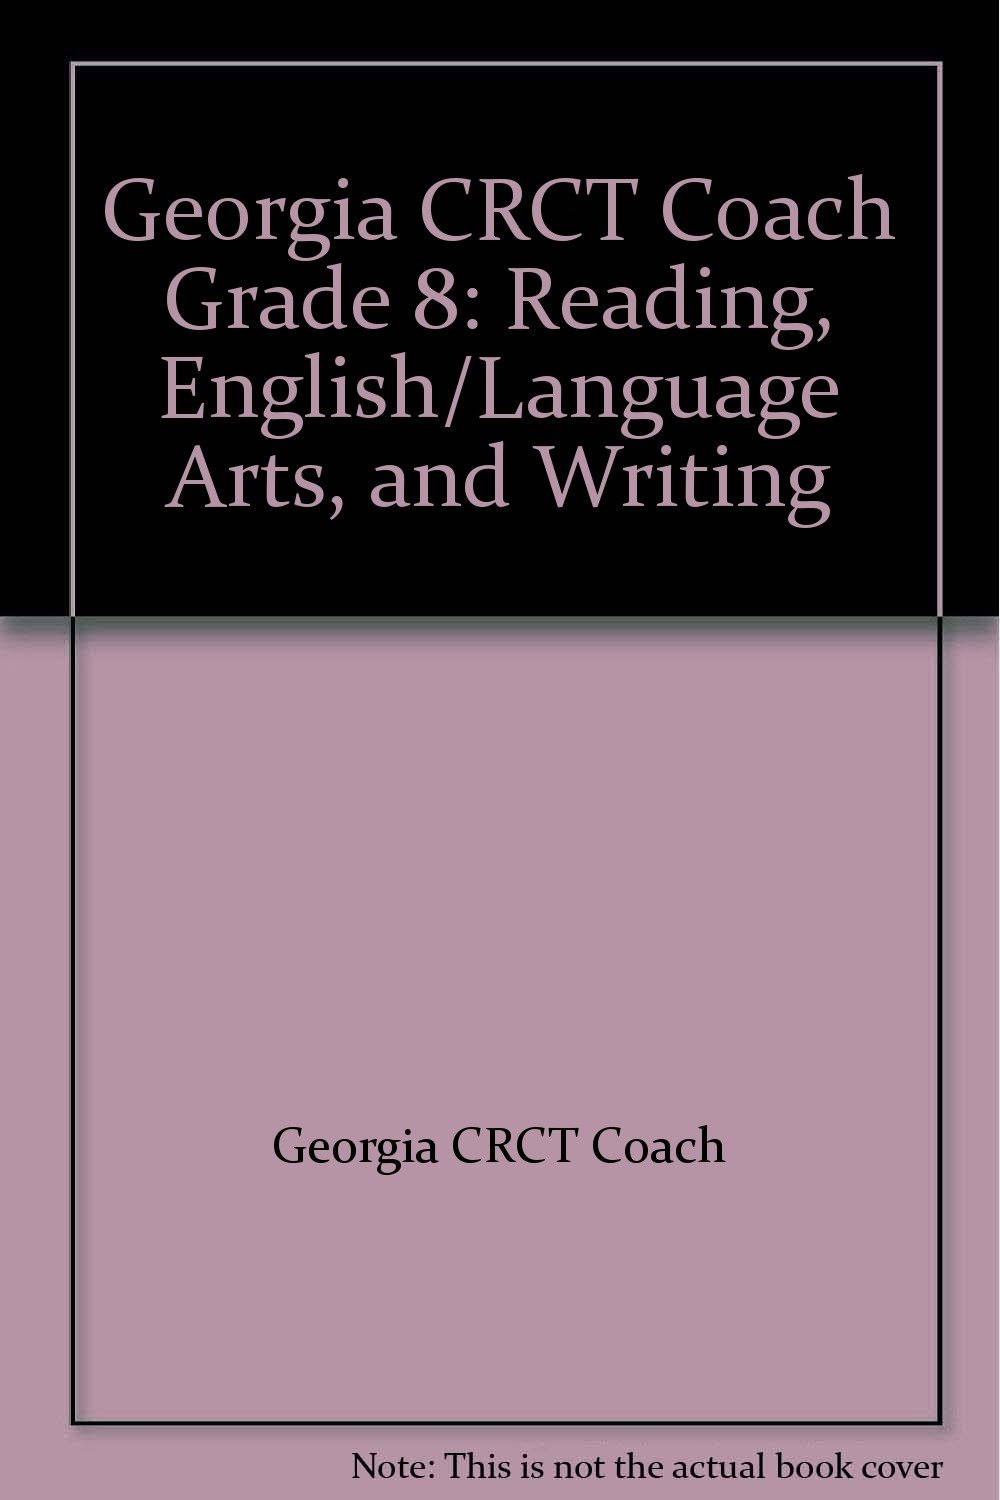 Download Georgia CRCT Coach GPS Edition Reading, English/Language Arts, and Writing, Grade 8 pdf